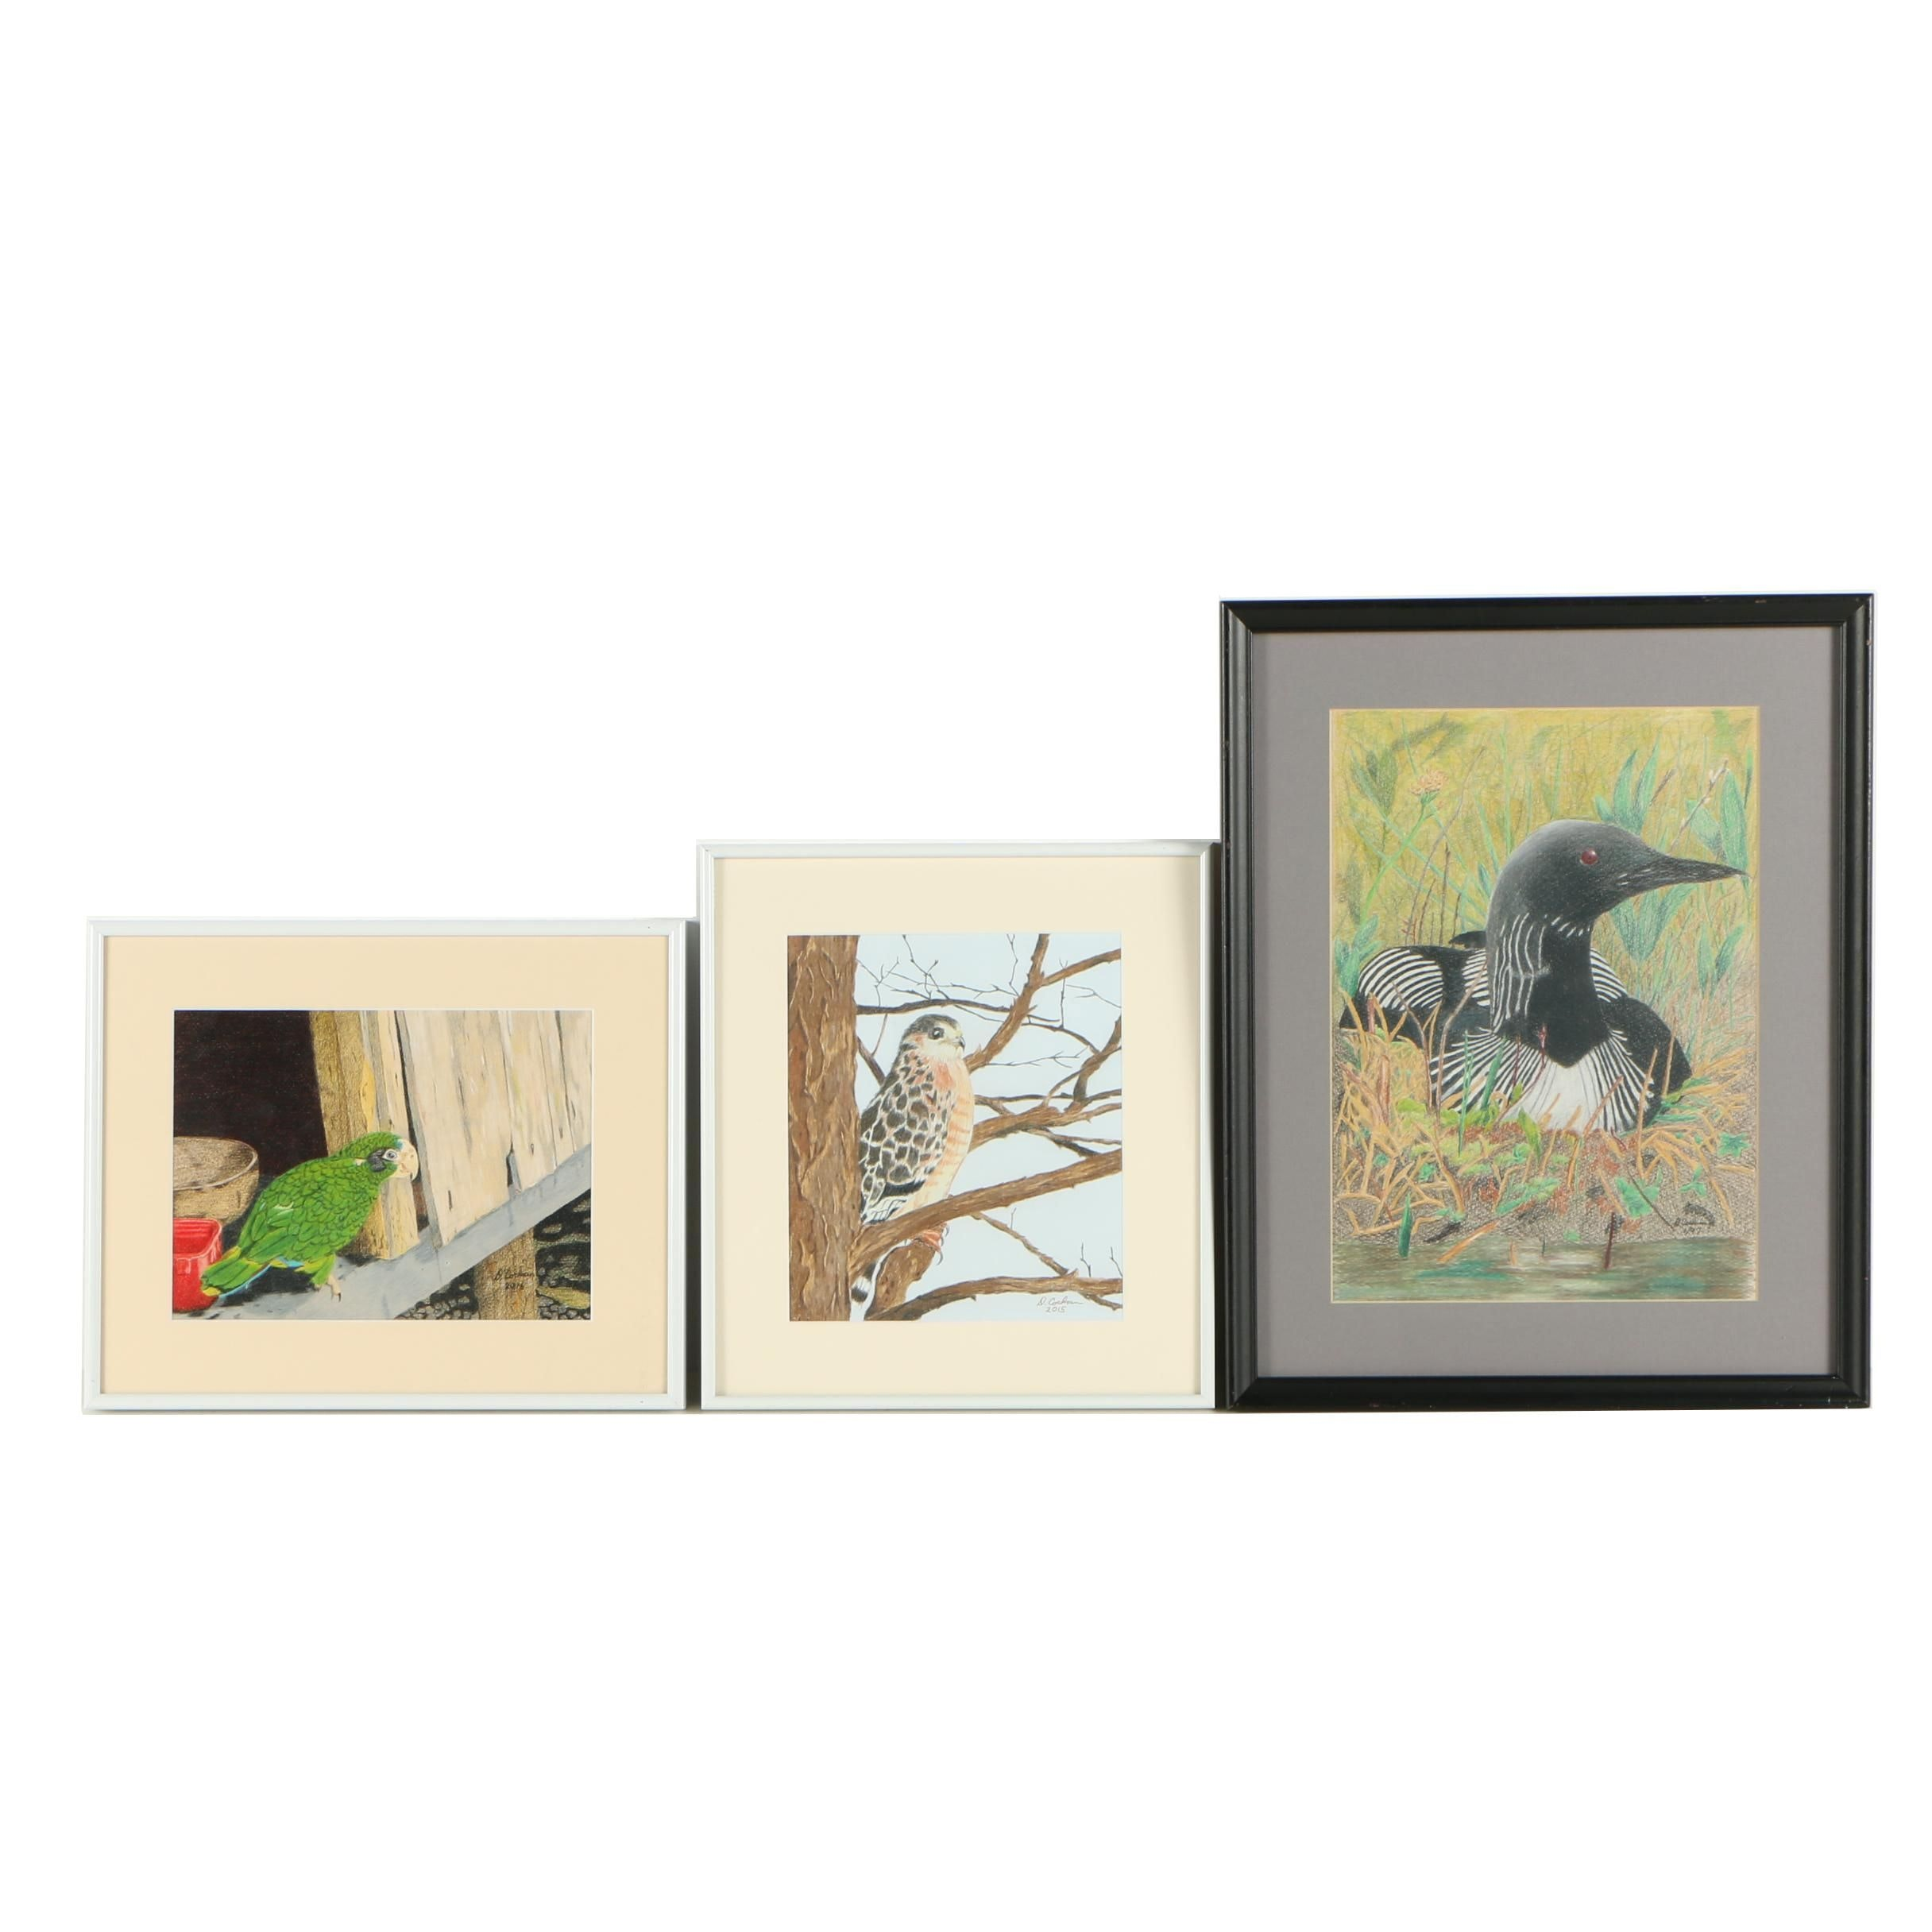 David Cochran Bird Themed Colored Pencil Drawings